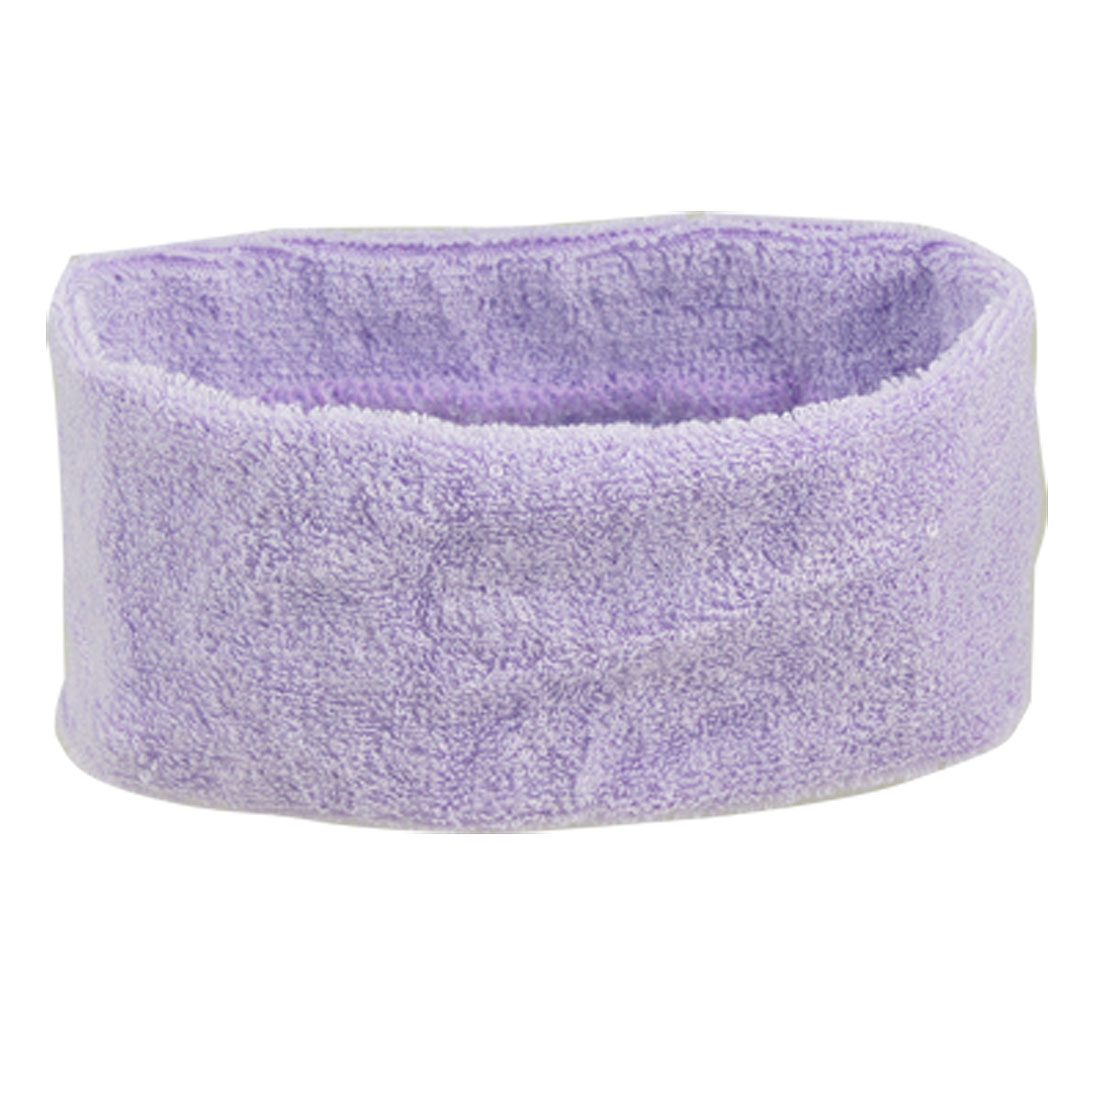 Sports Athletic Excercise Elastic Headband Sweatband Purple 2 Pcs